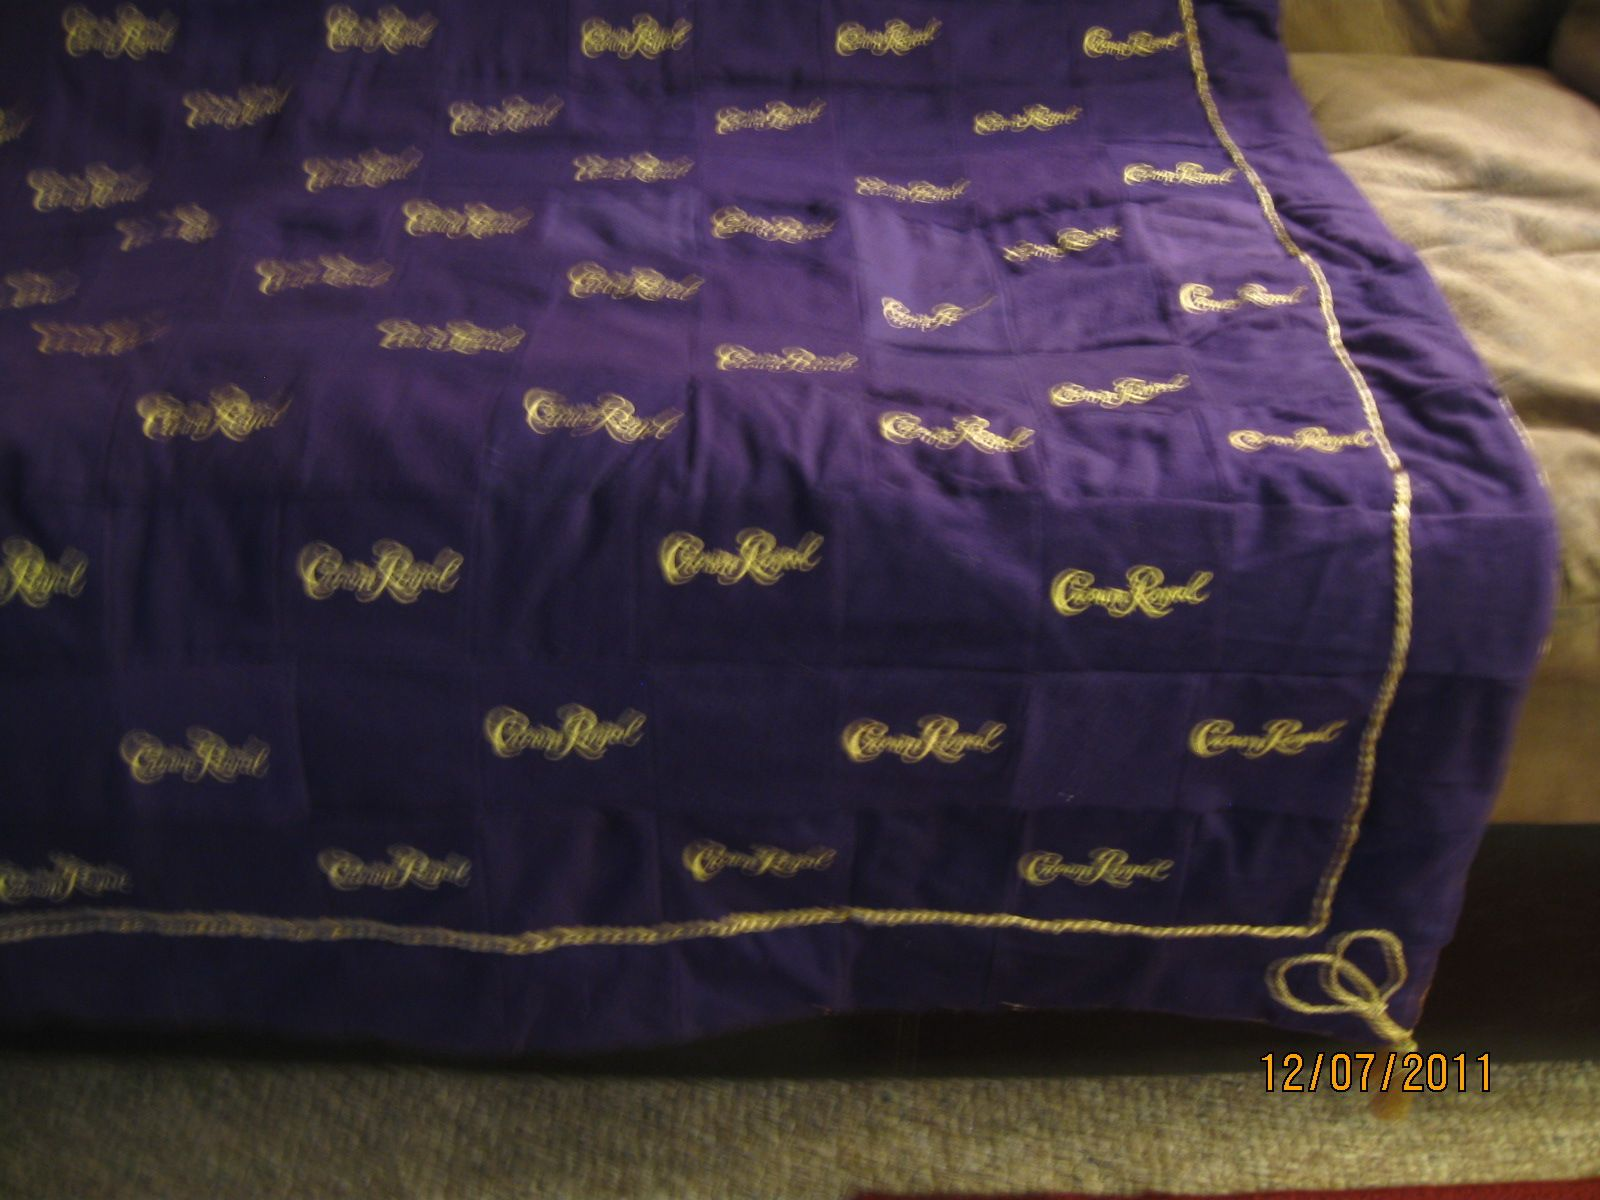 quilt made out of crown royal bags | Posted by lindsey kokkeler at ... : quilt made from crown royal bags - Adamdwight.com